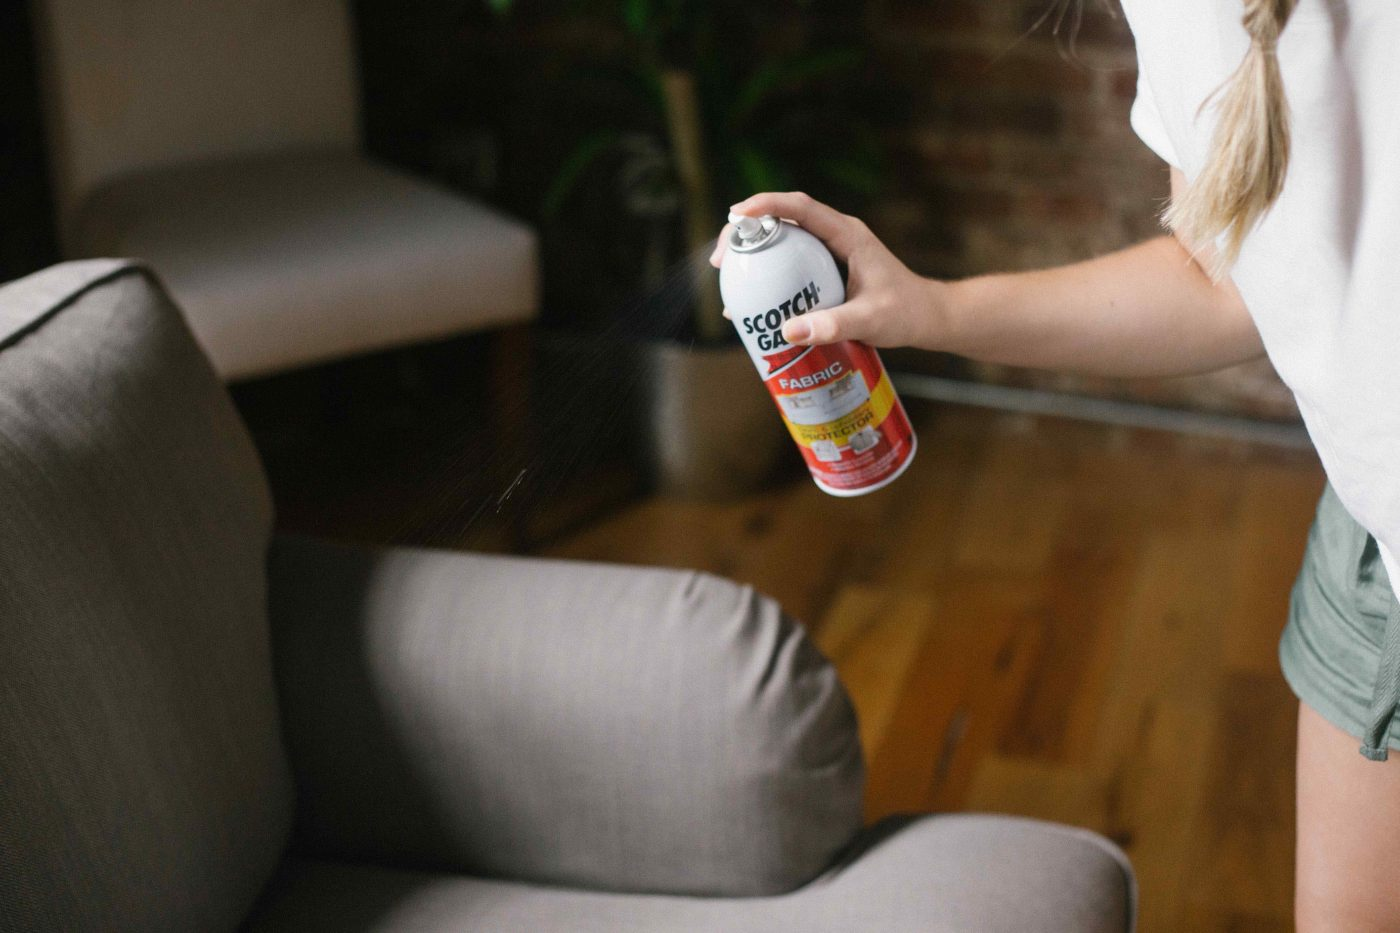 Couch-spraying.